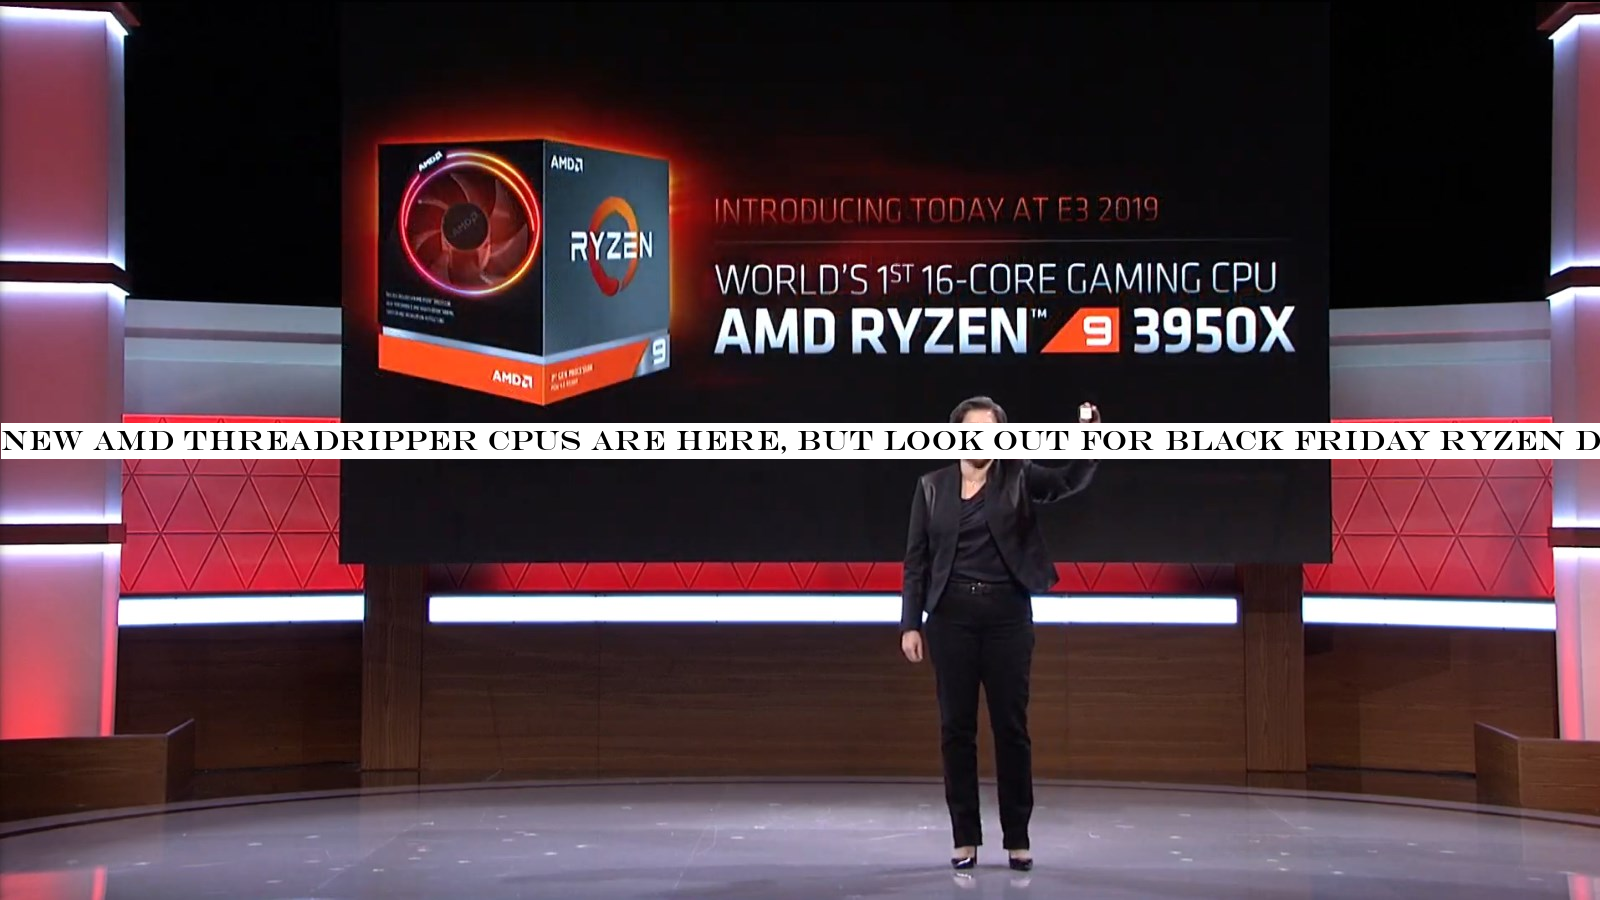 New Amd Threadripper Cpus Are Here But Look Out For Black Friday Ryzen Deals Theindiansubcontinent